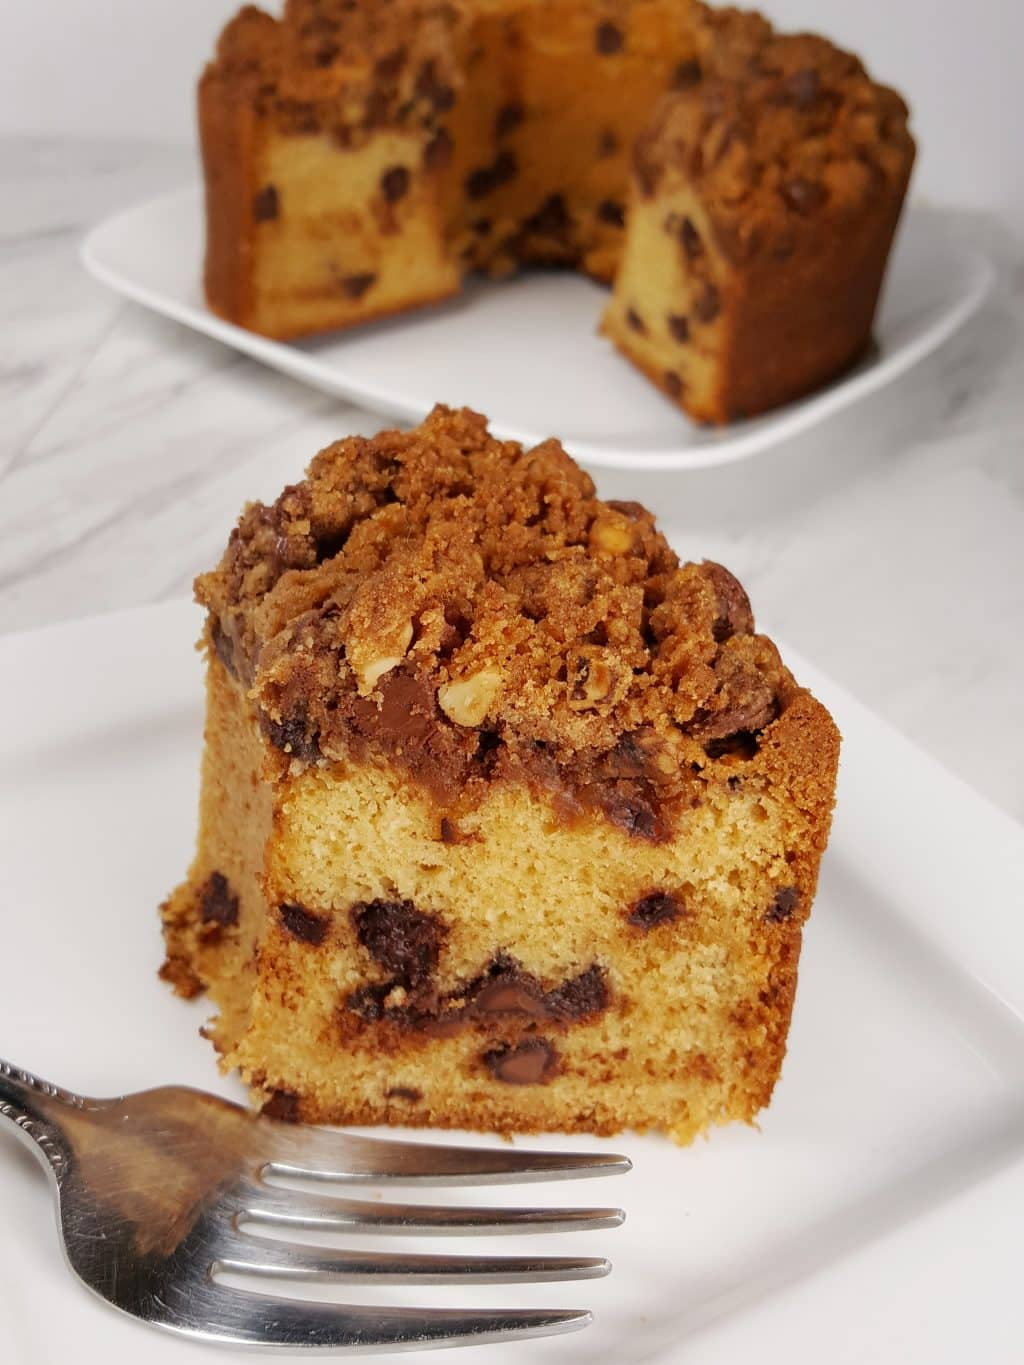 Best Ever Chocolate Chip Coffee Cake